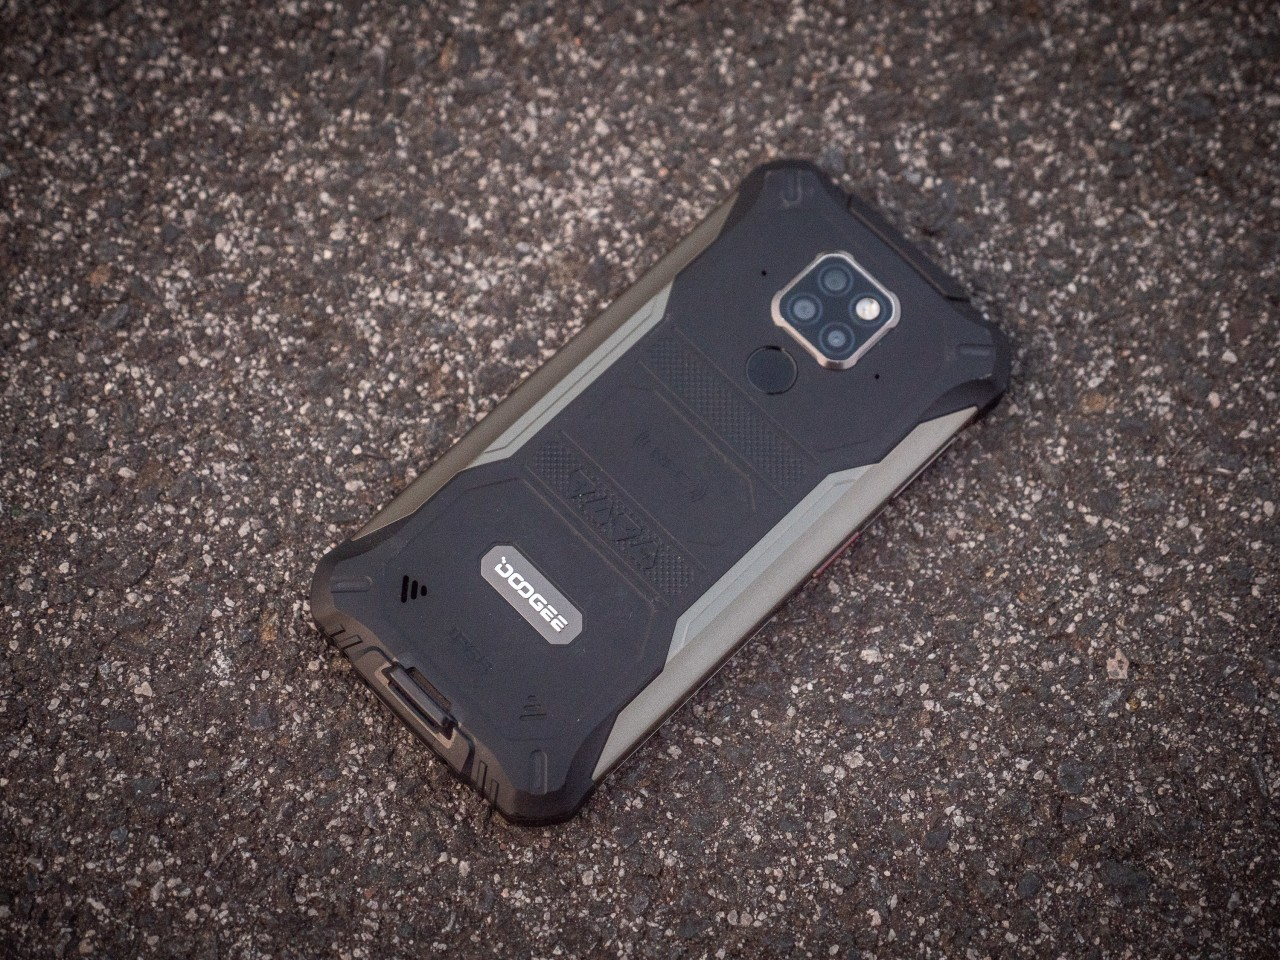 The phone's case is quite attractive for something so bombproof